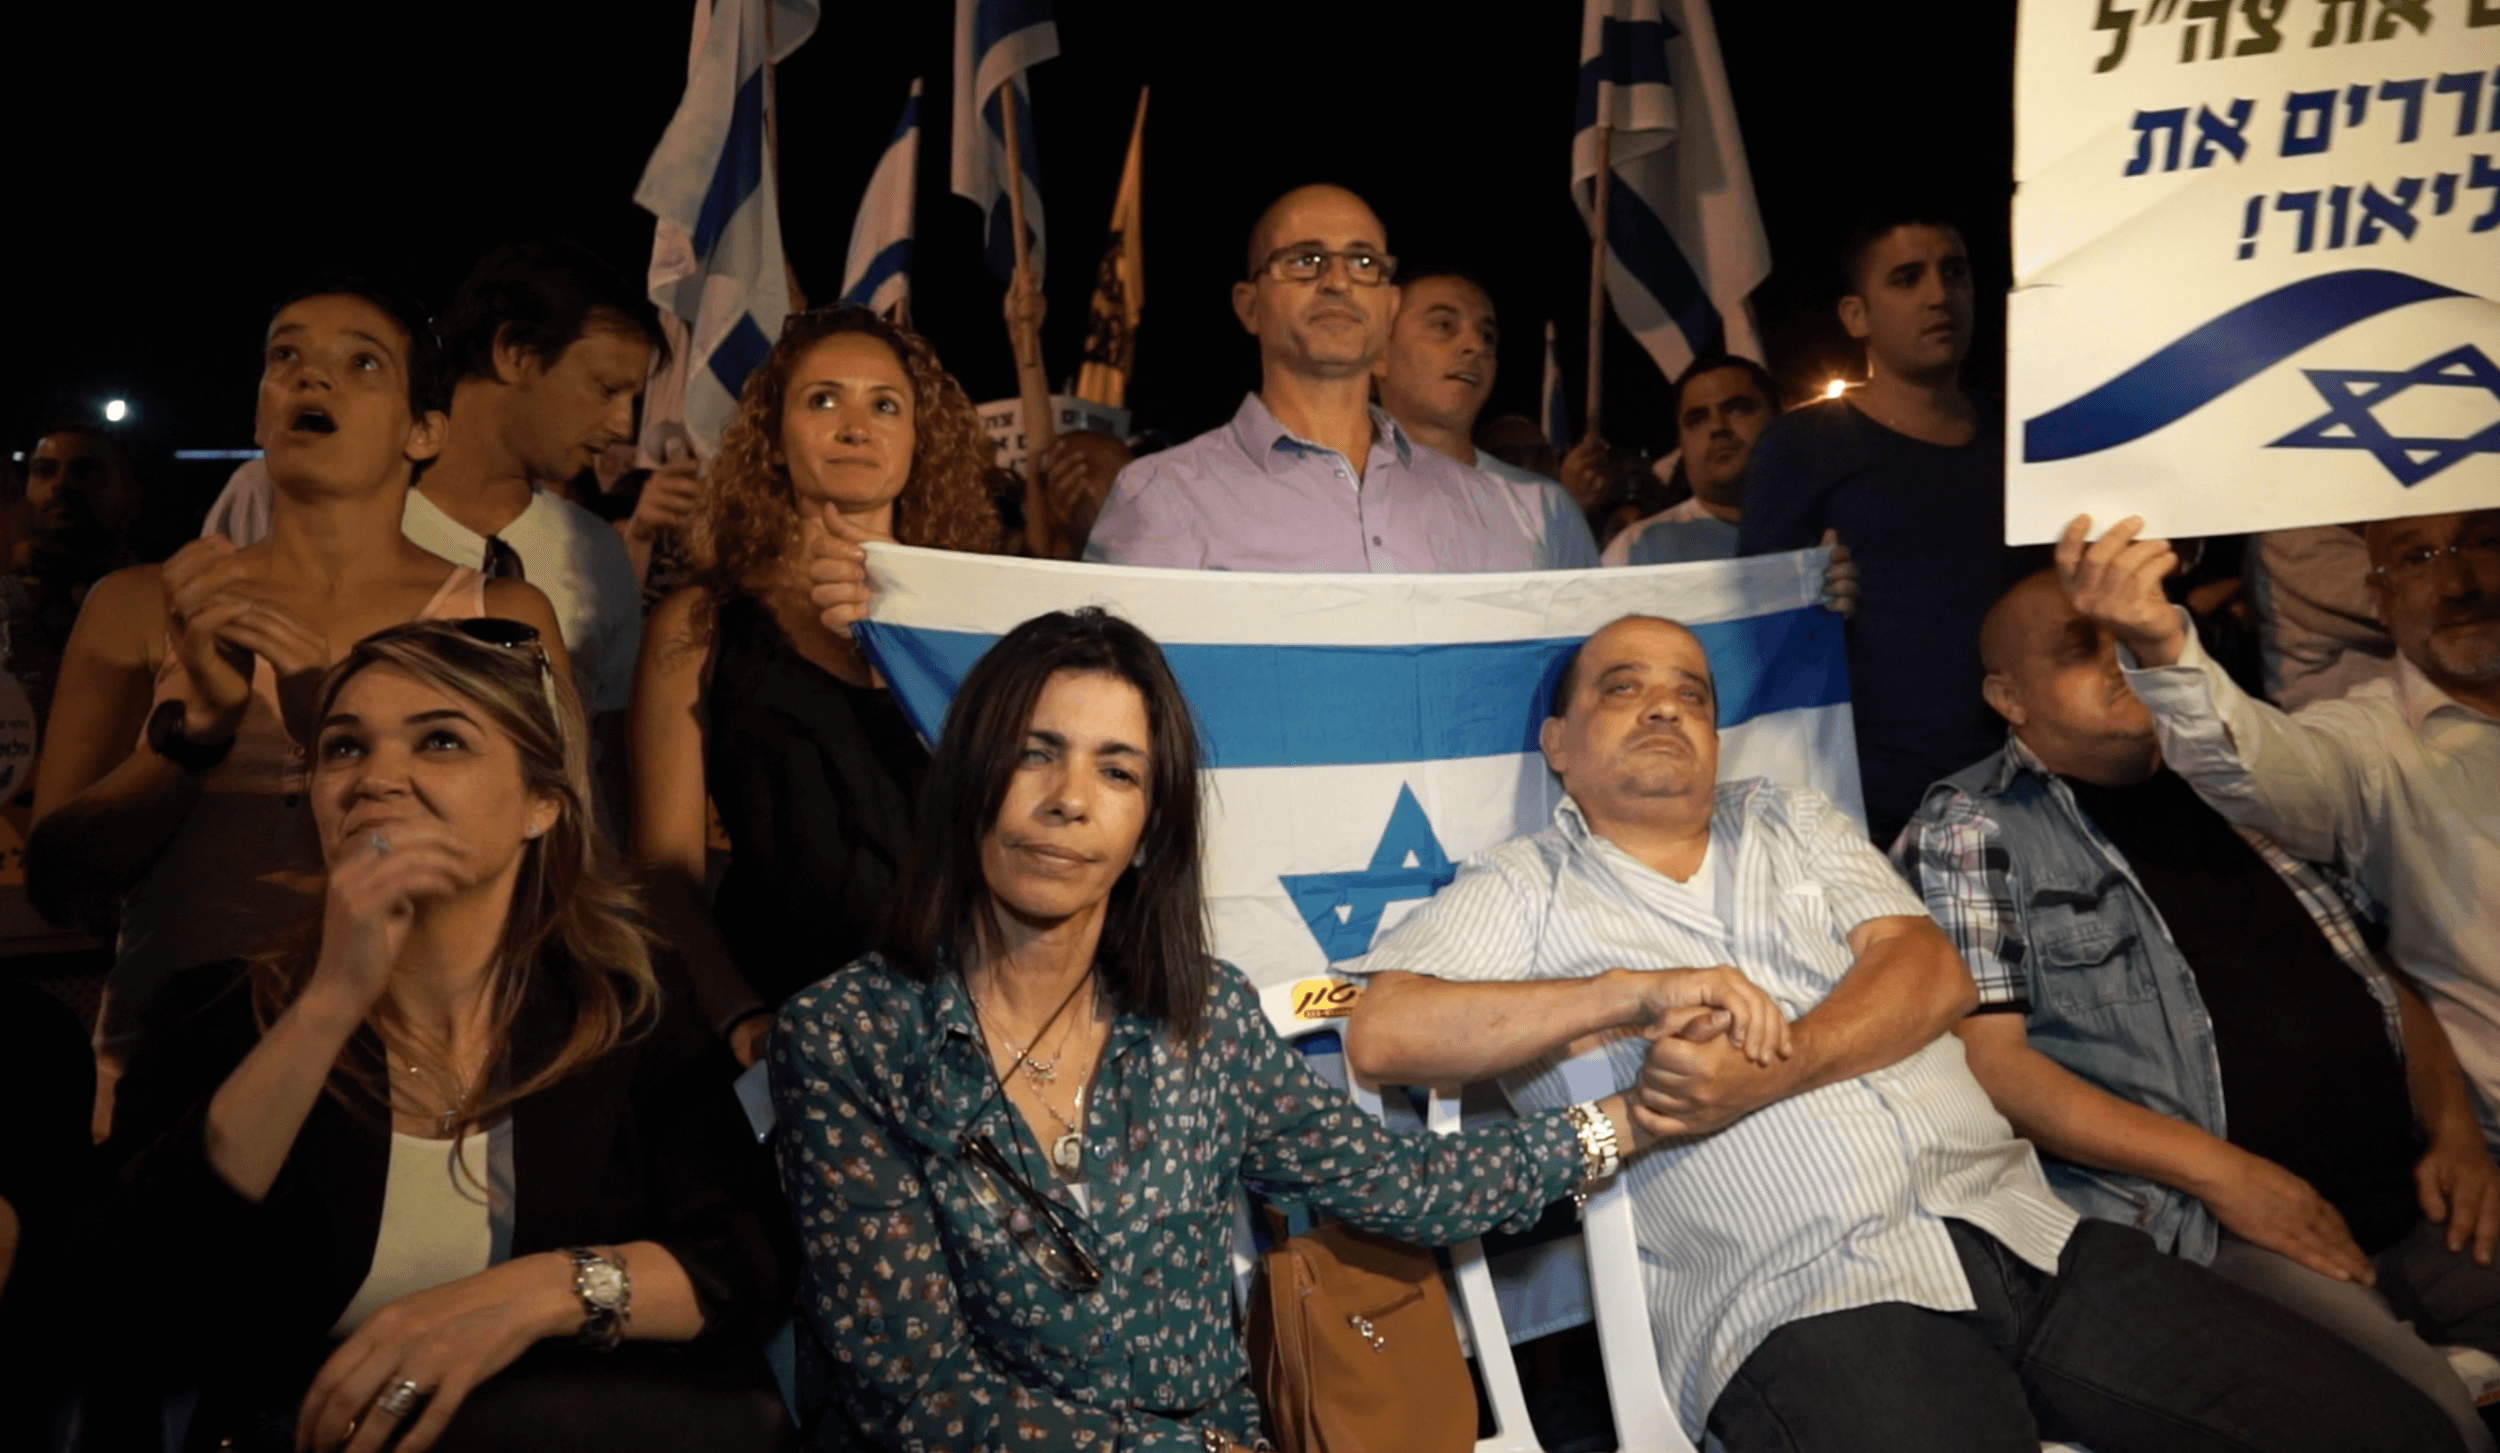 Etti and Charlie Azarya, the parents of executioner-solier Elor Azarya